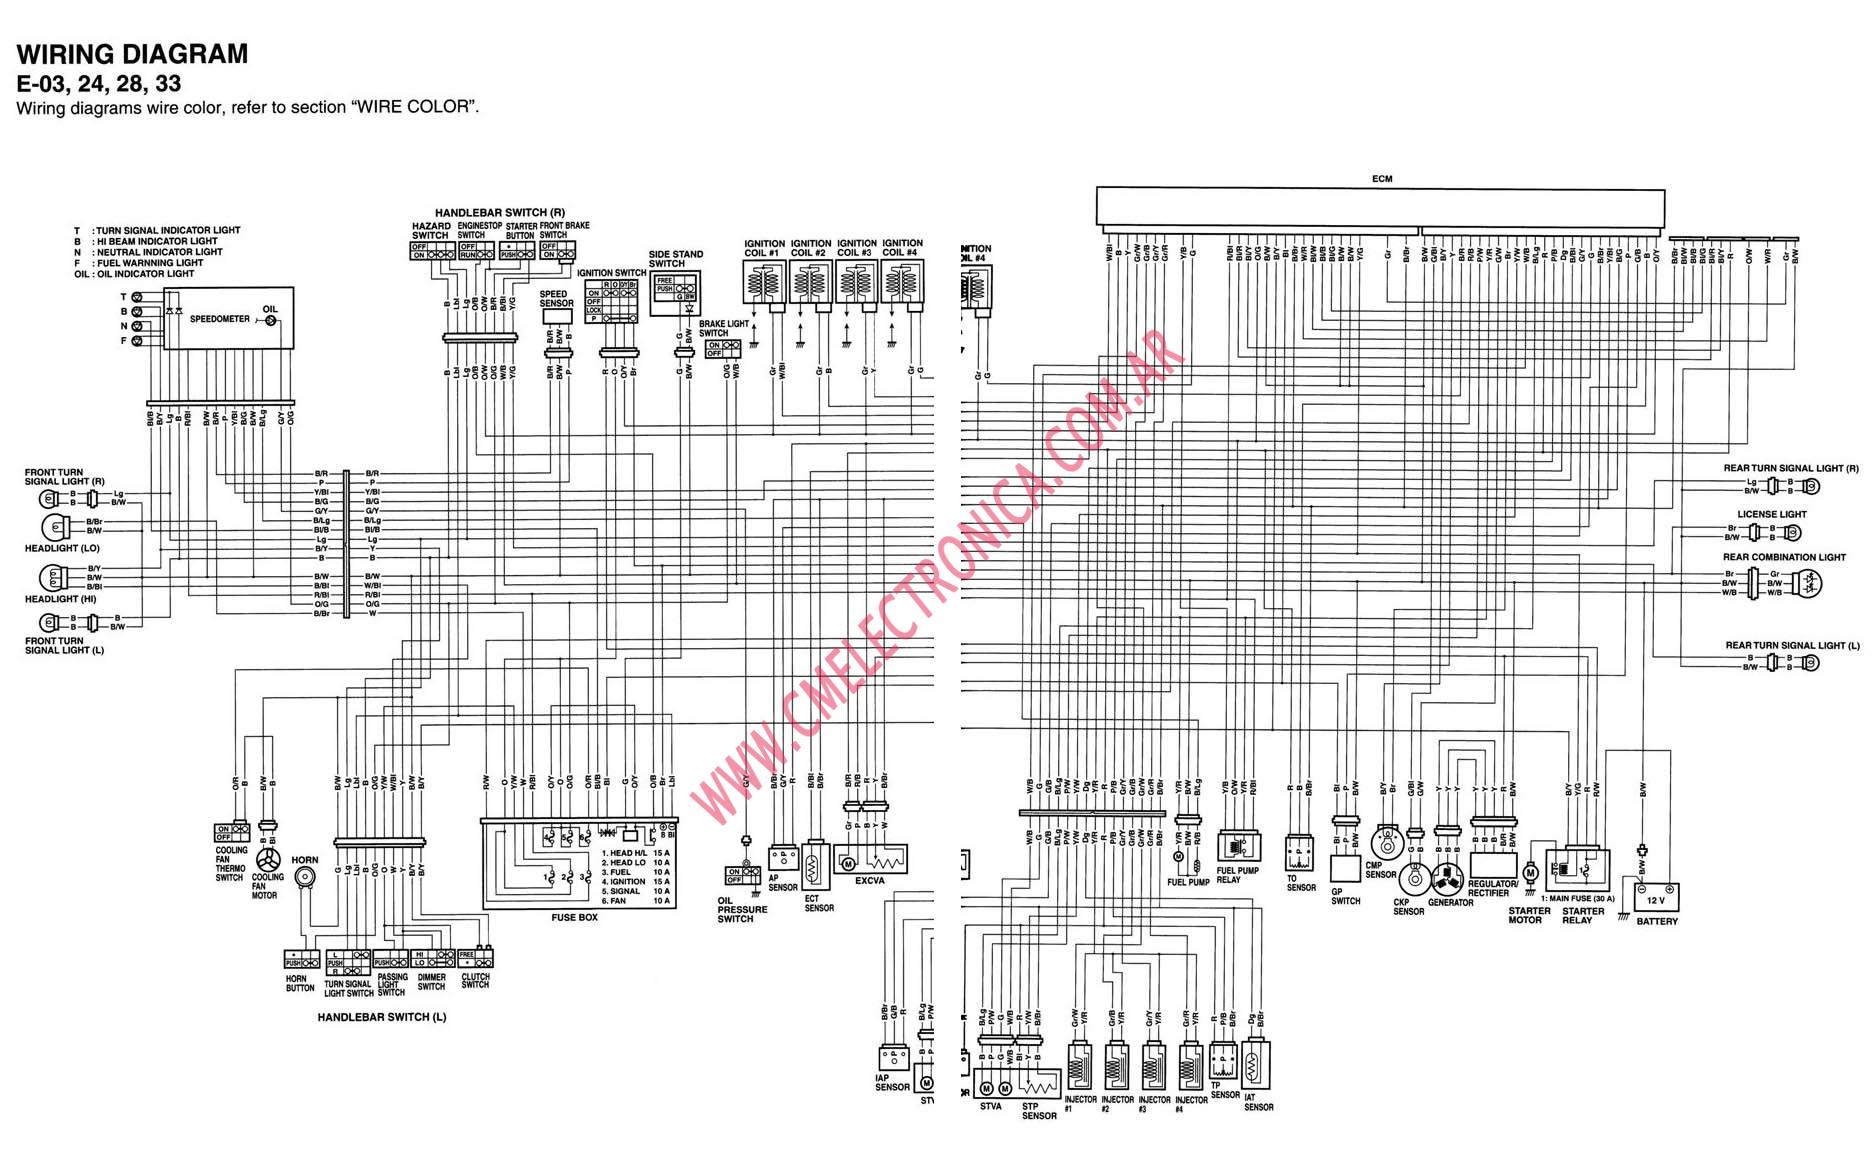 wiring diagram for 1989 yamaha fzr 1000 yzf r6 wiring diagram wiring diagram